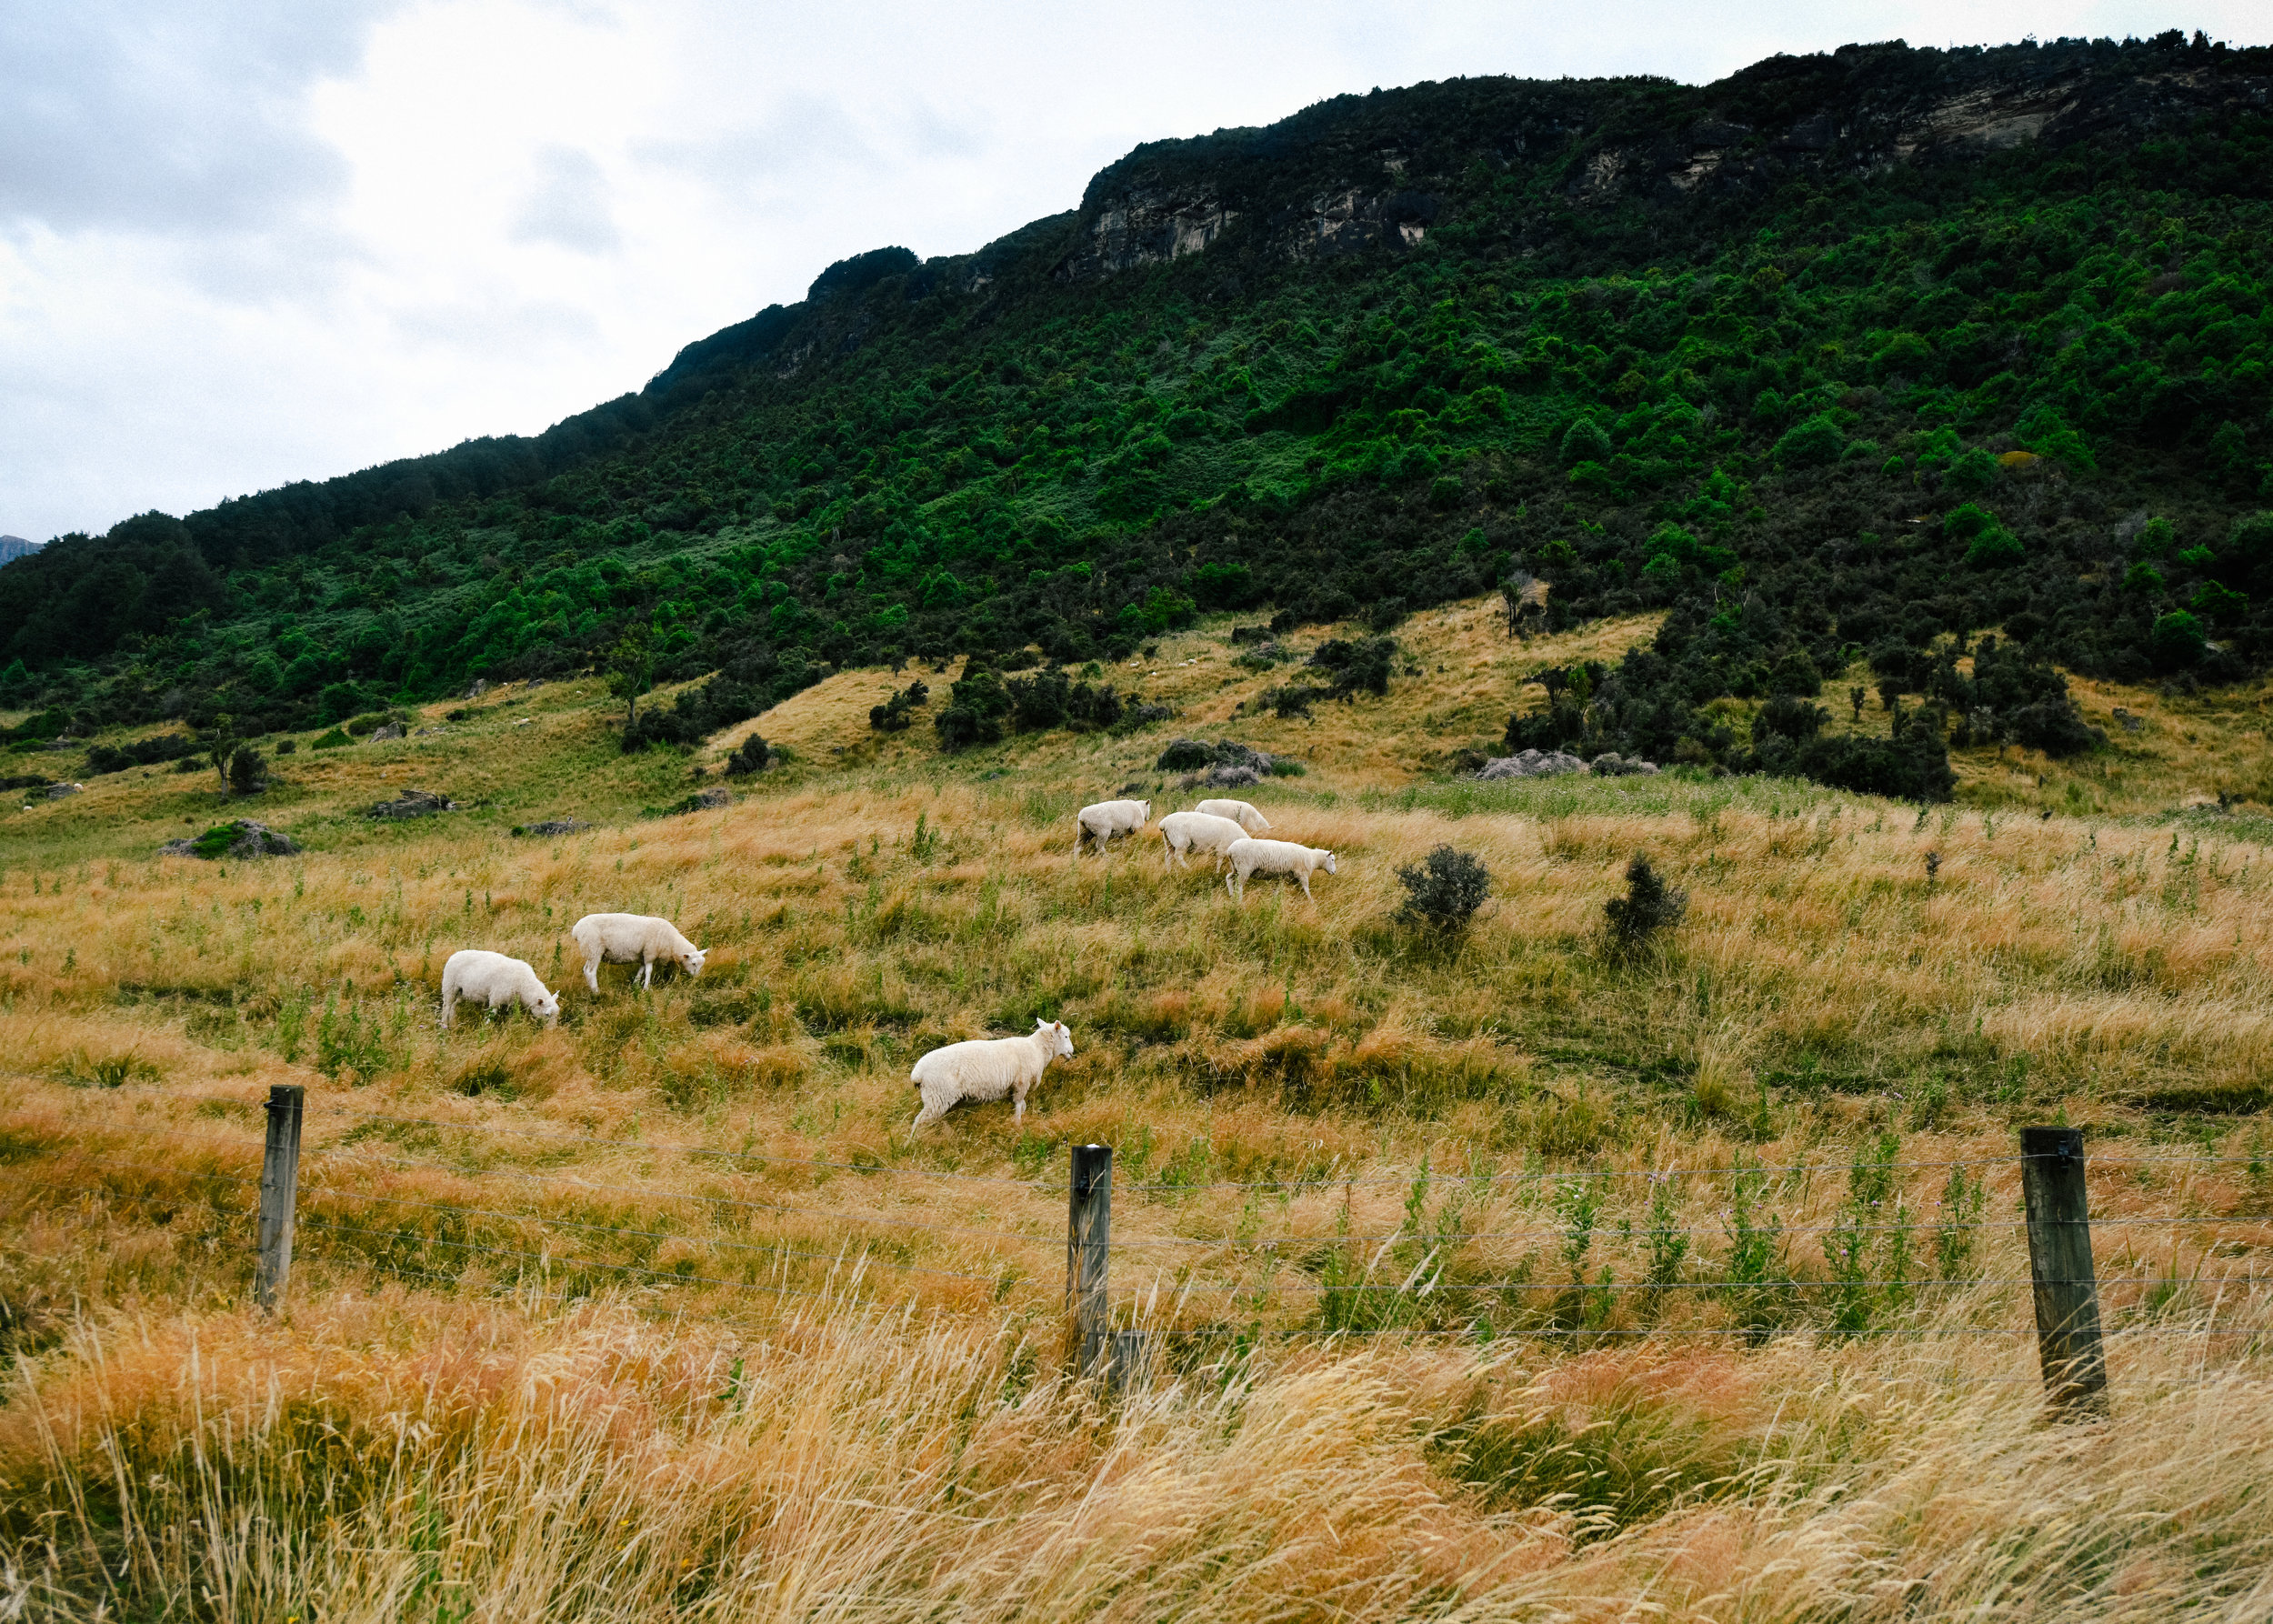 Sheeps on a hill